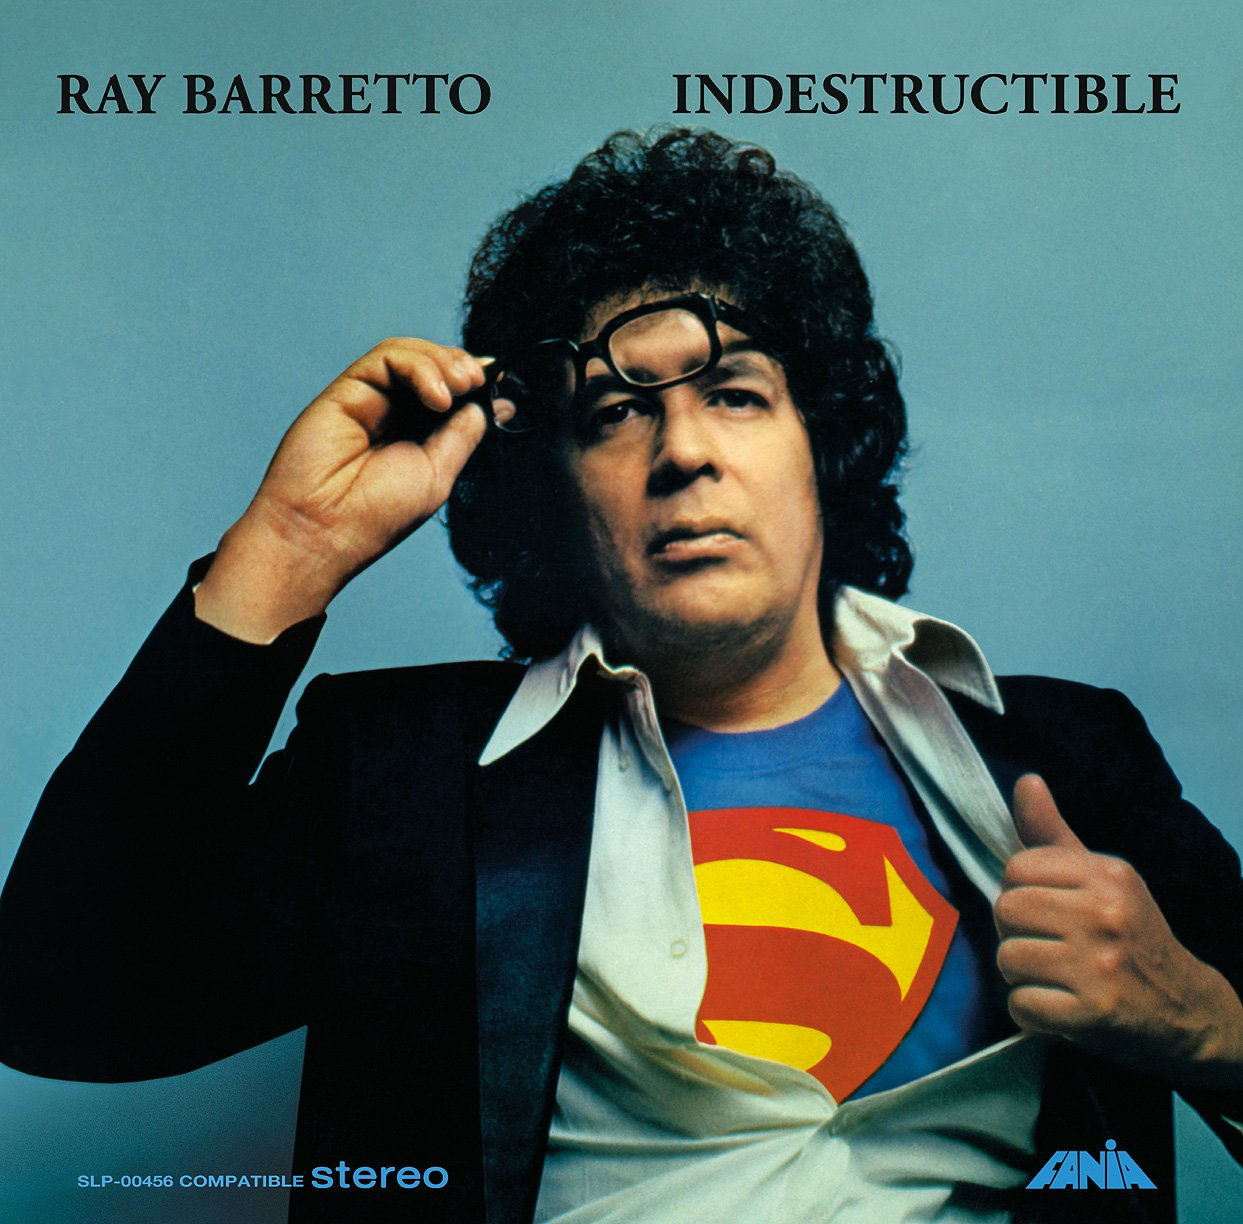 Indestructible by Fania